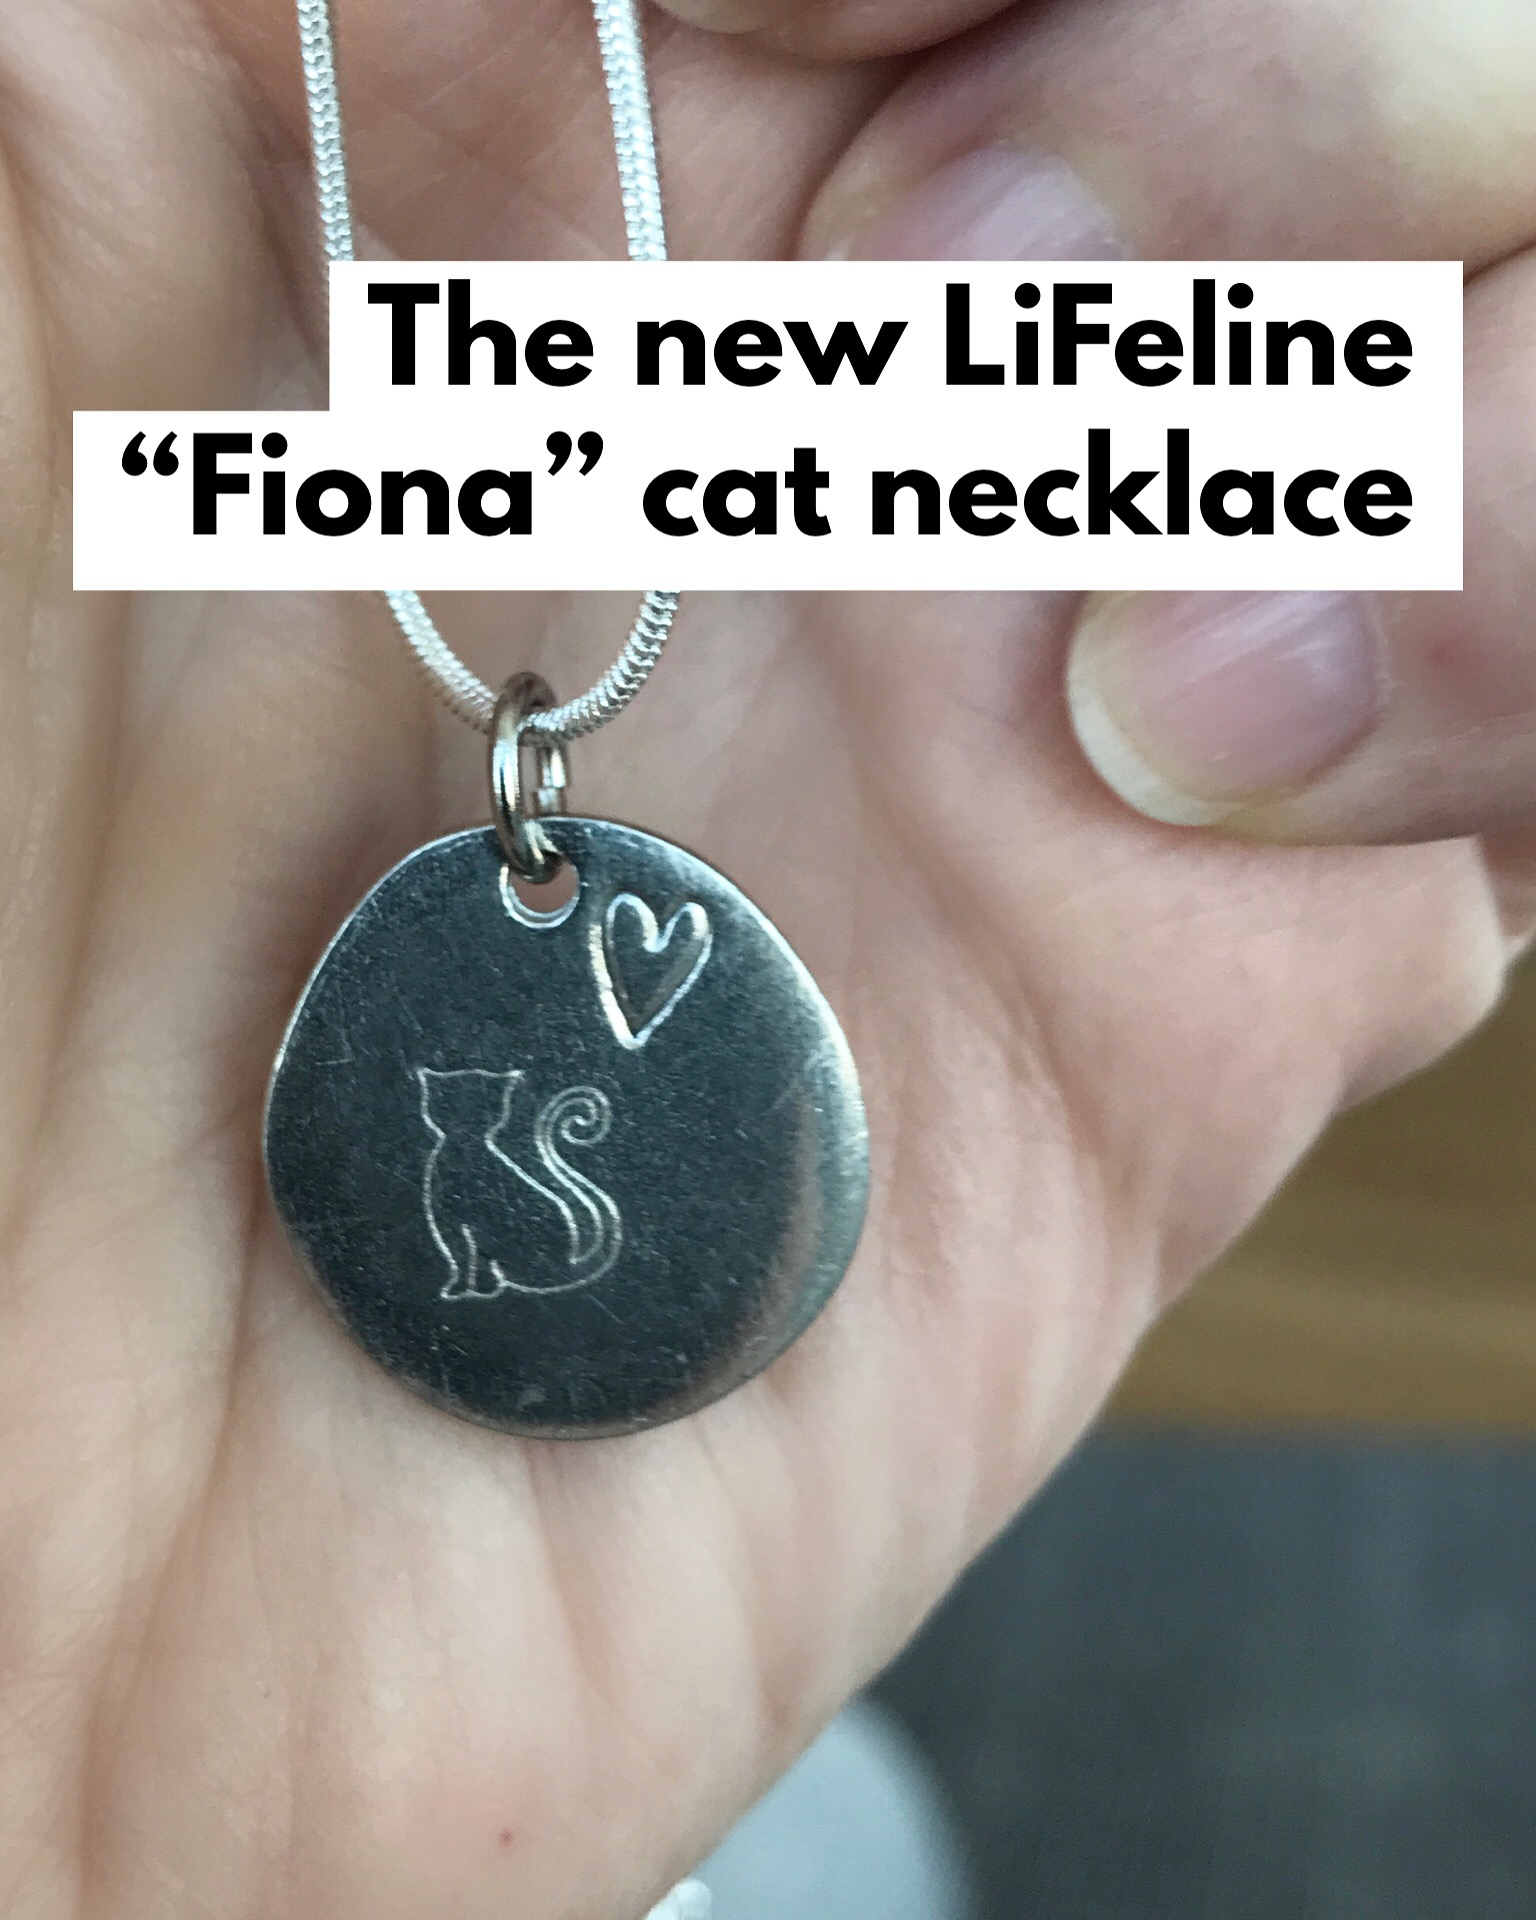 """The Fiona necklace - 225 kr - The design for this necklace was inspired by our own Fiona, who often looks out the window dreaming of the love of a forever home. The necklace features a hand-stamped solid metal charm (2mm thick) on a genuine silver-plated chain that is 46cm (18""""), but adjustable to 37cm (15""""). We only have 15 necklaces so if you would like one then please comment or direct message us here so we can confirm your order. After that, we will invite you to pay on Swish or Bank Giro. Thank you for supporting us and our work to help the homeless cats of Malmö have a chance at a better life."""